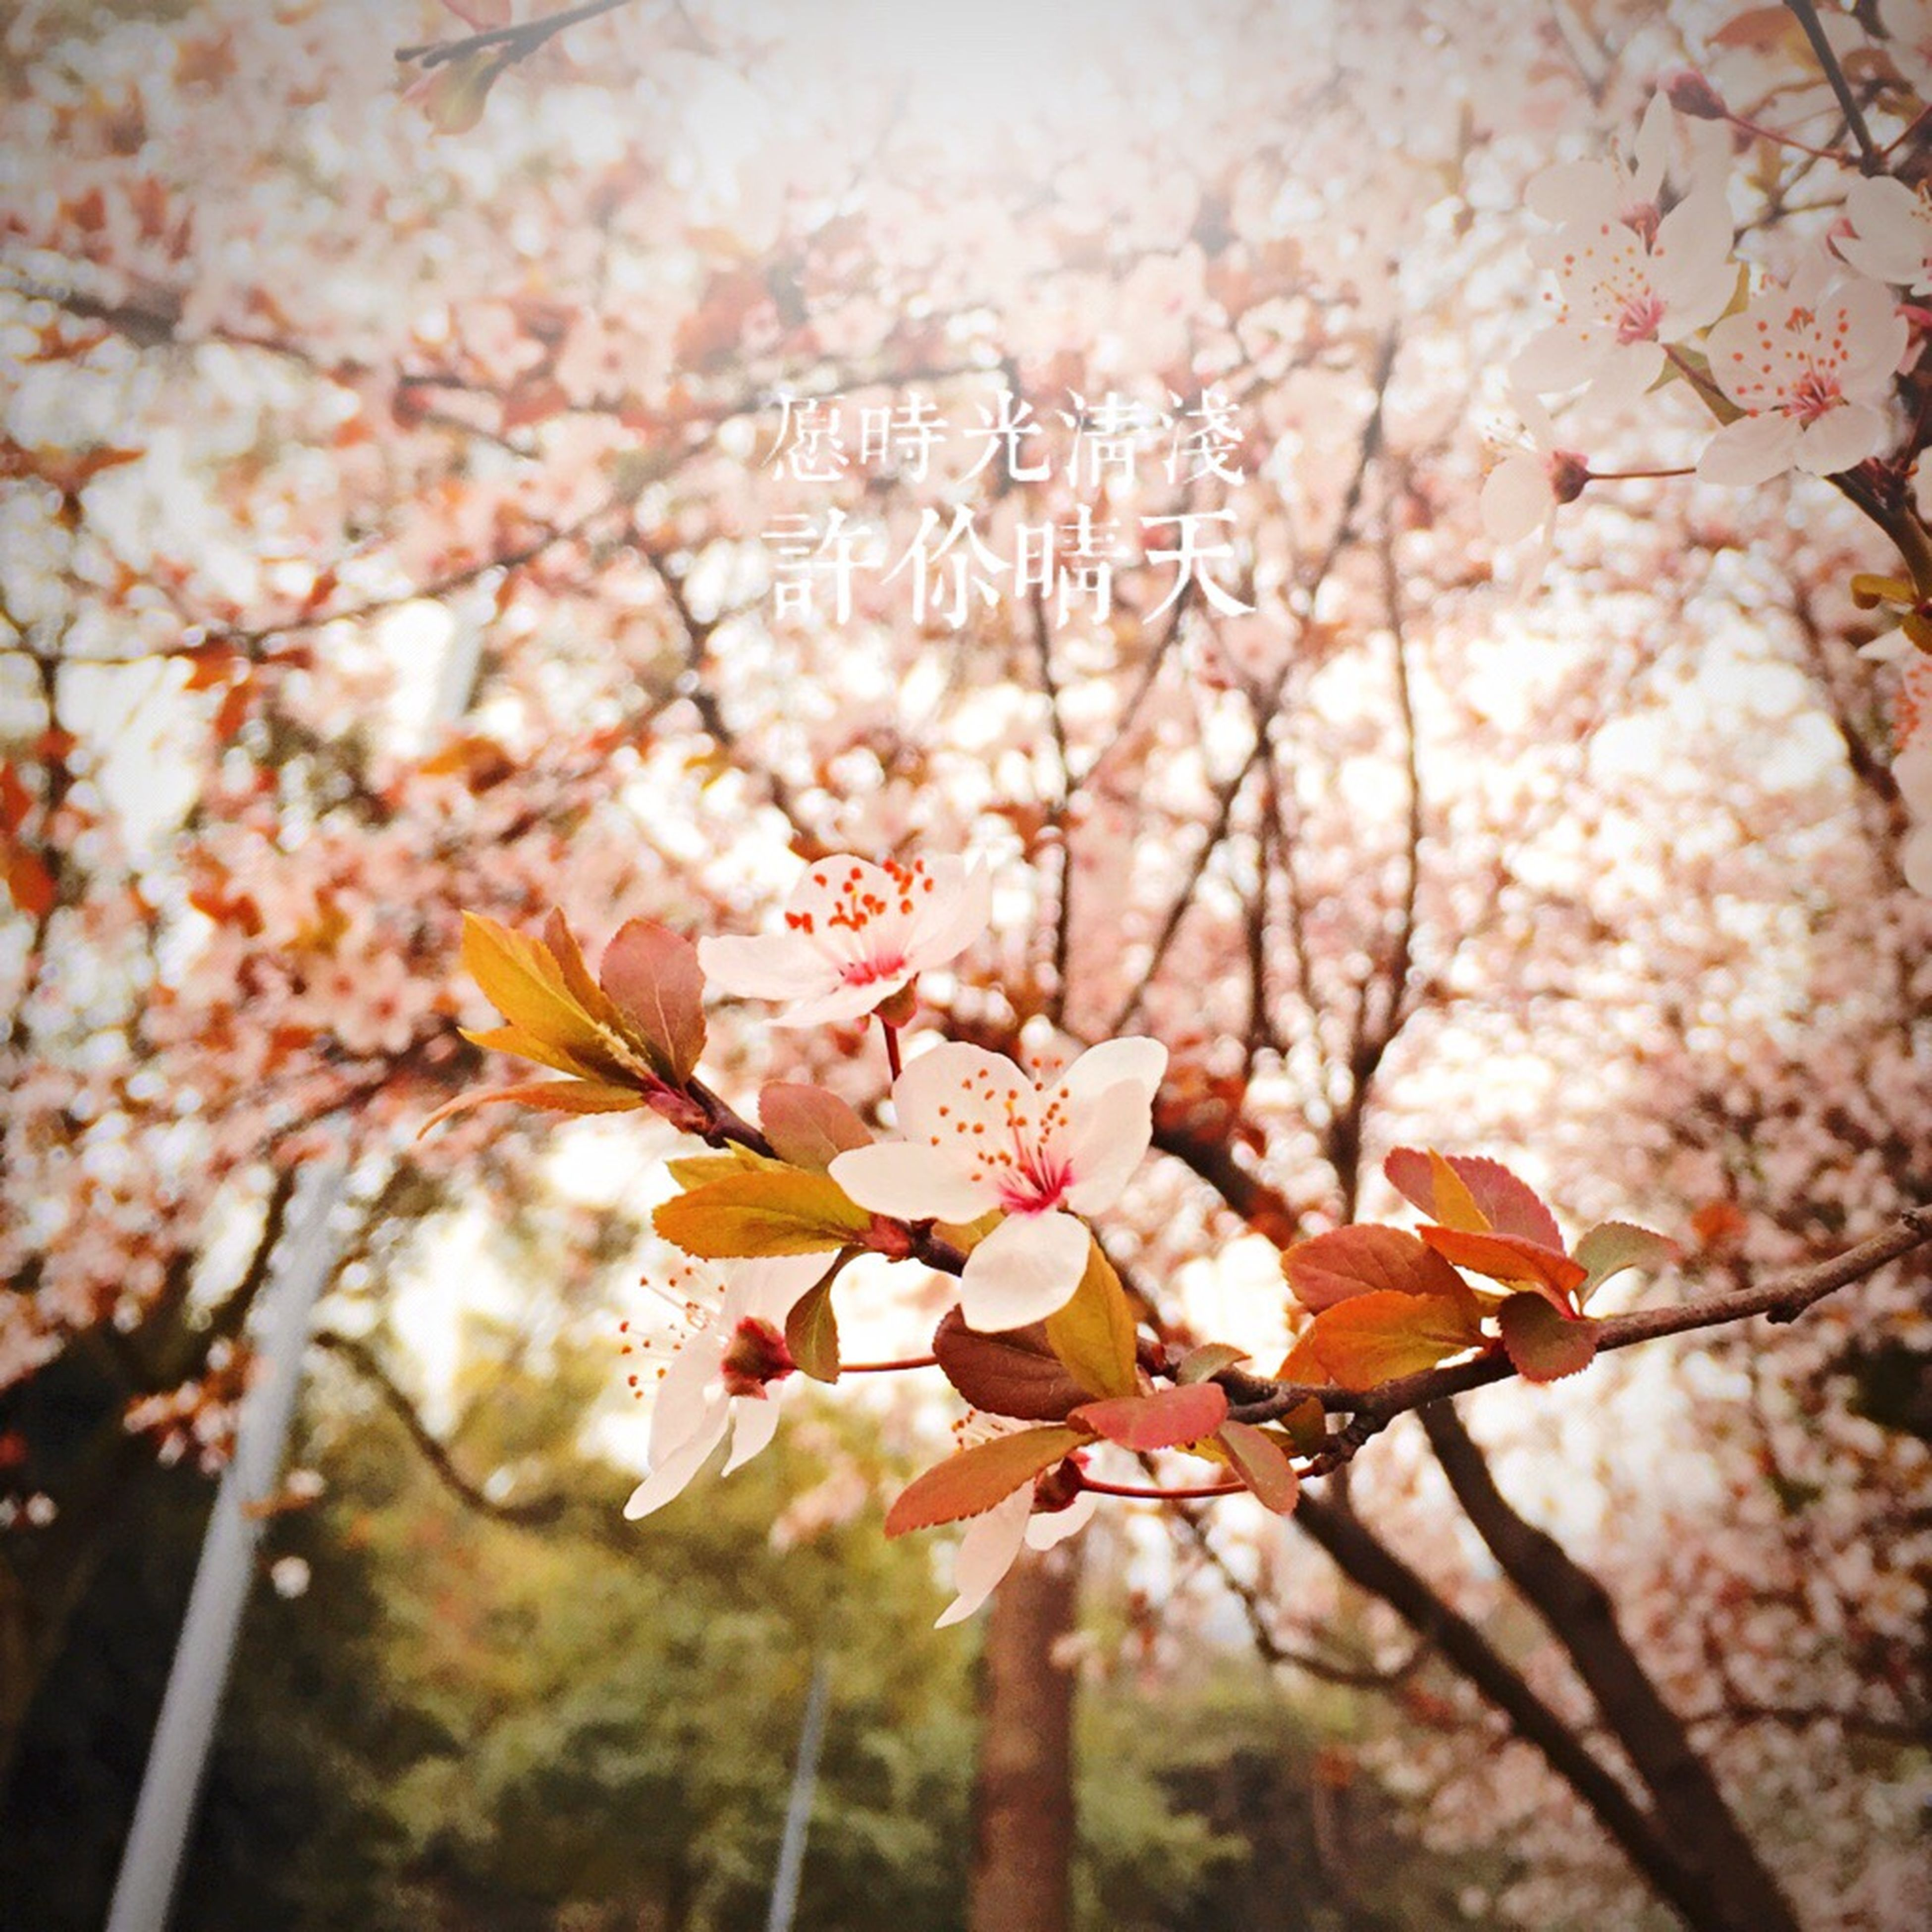 flower, branch, freshness, tree, fragility, growth, nature, beauty in nature, focus on foreground, blossom, cherry blossom, close-up, cherry tree, twig, petal, springtime, season, pink color, fruit tree, outdoors